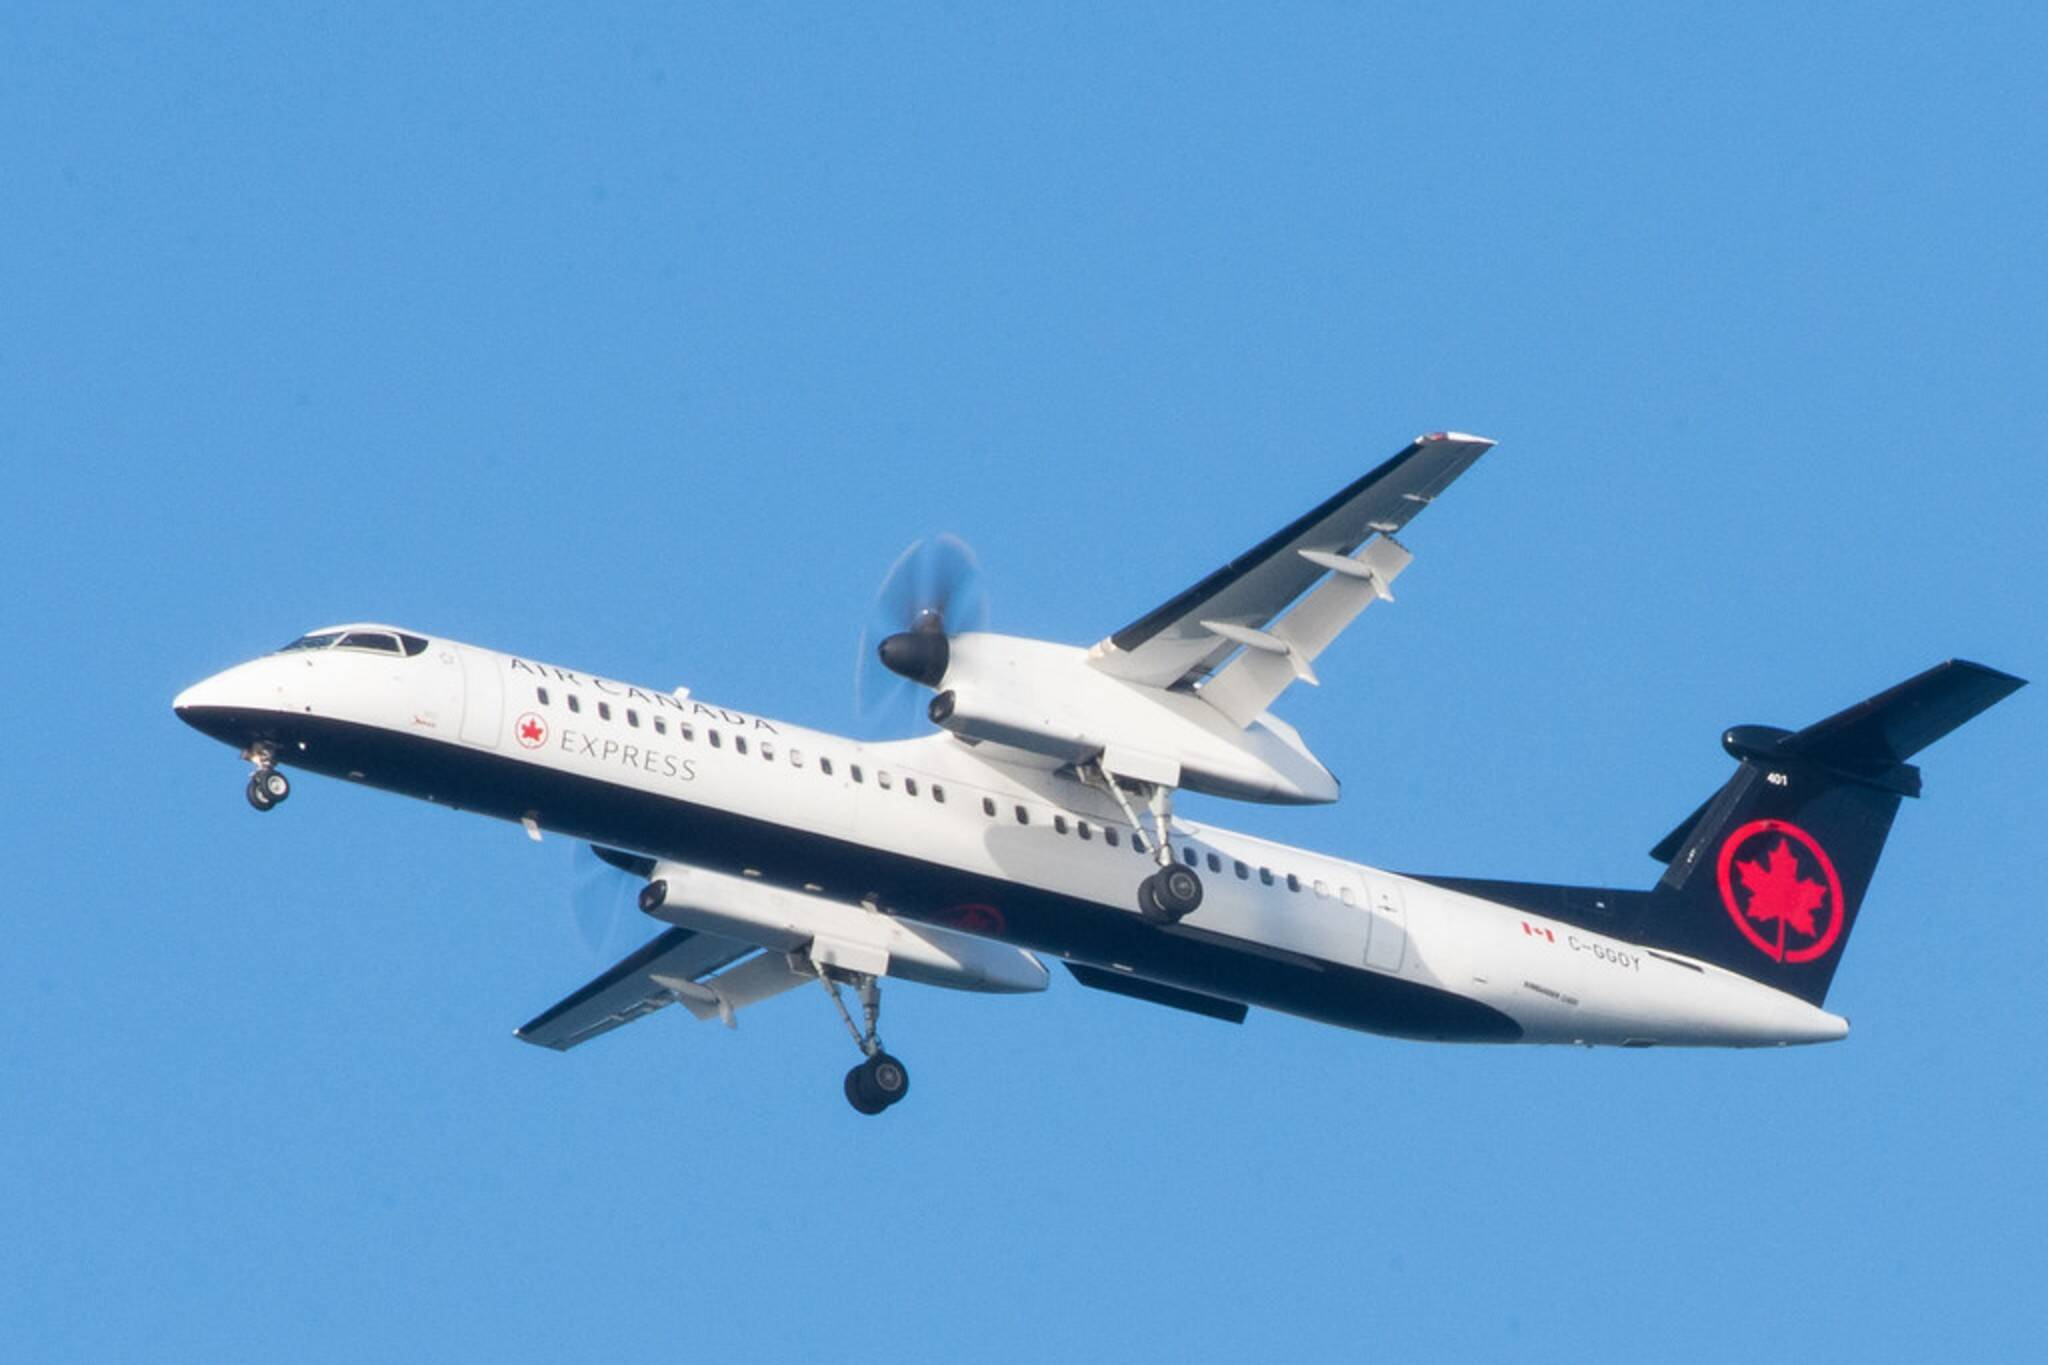 At Least 4 More International Flights With Cases Of Covid 19 Arrived In Toronto Recently